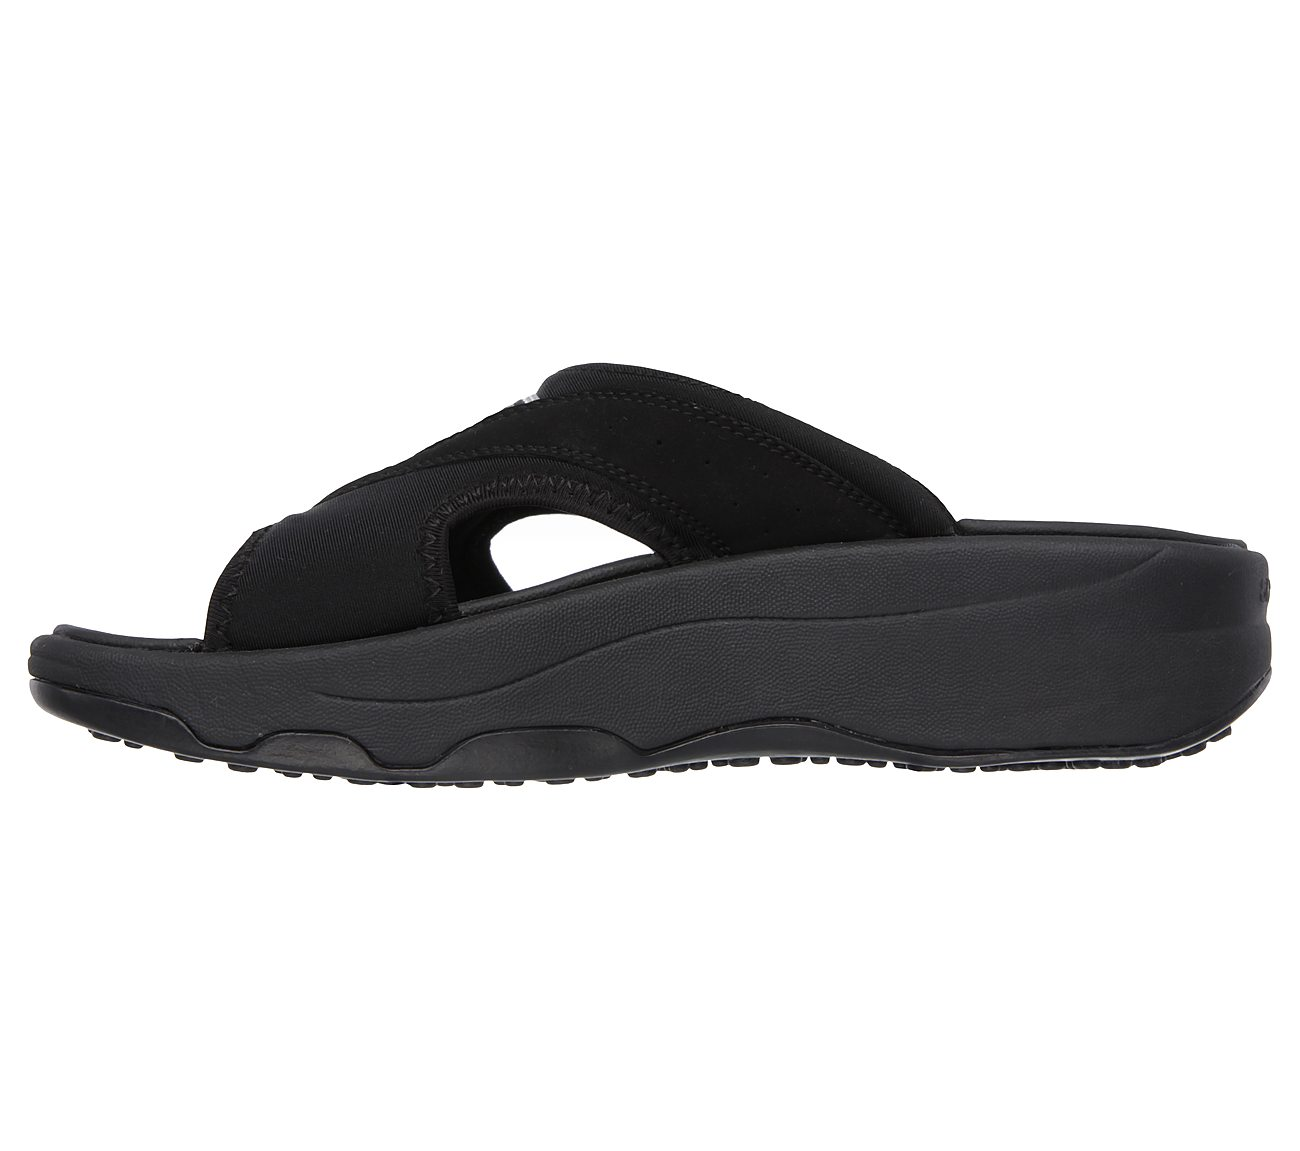 quality exclusive shoes classic shoes Relaxed Fit: Elevates - Invigorations